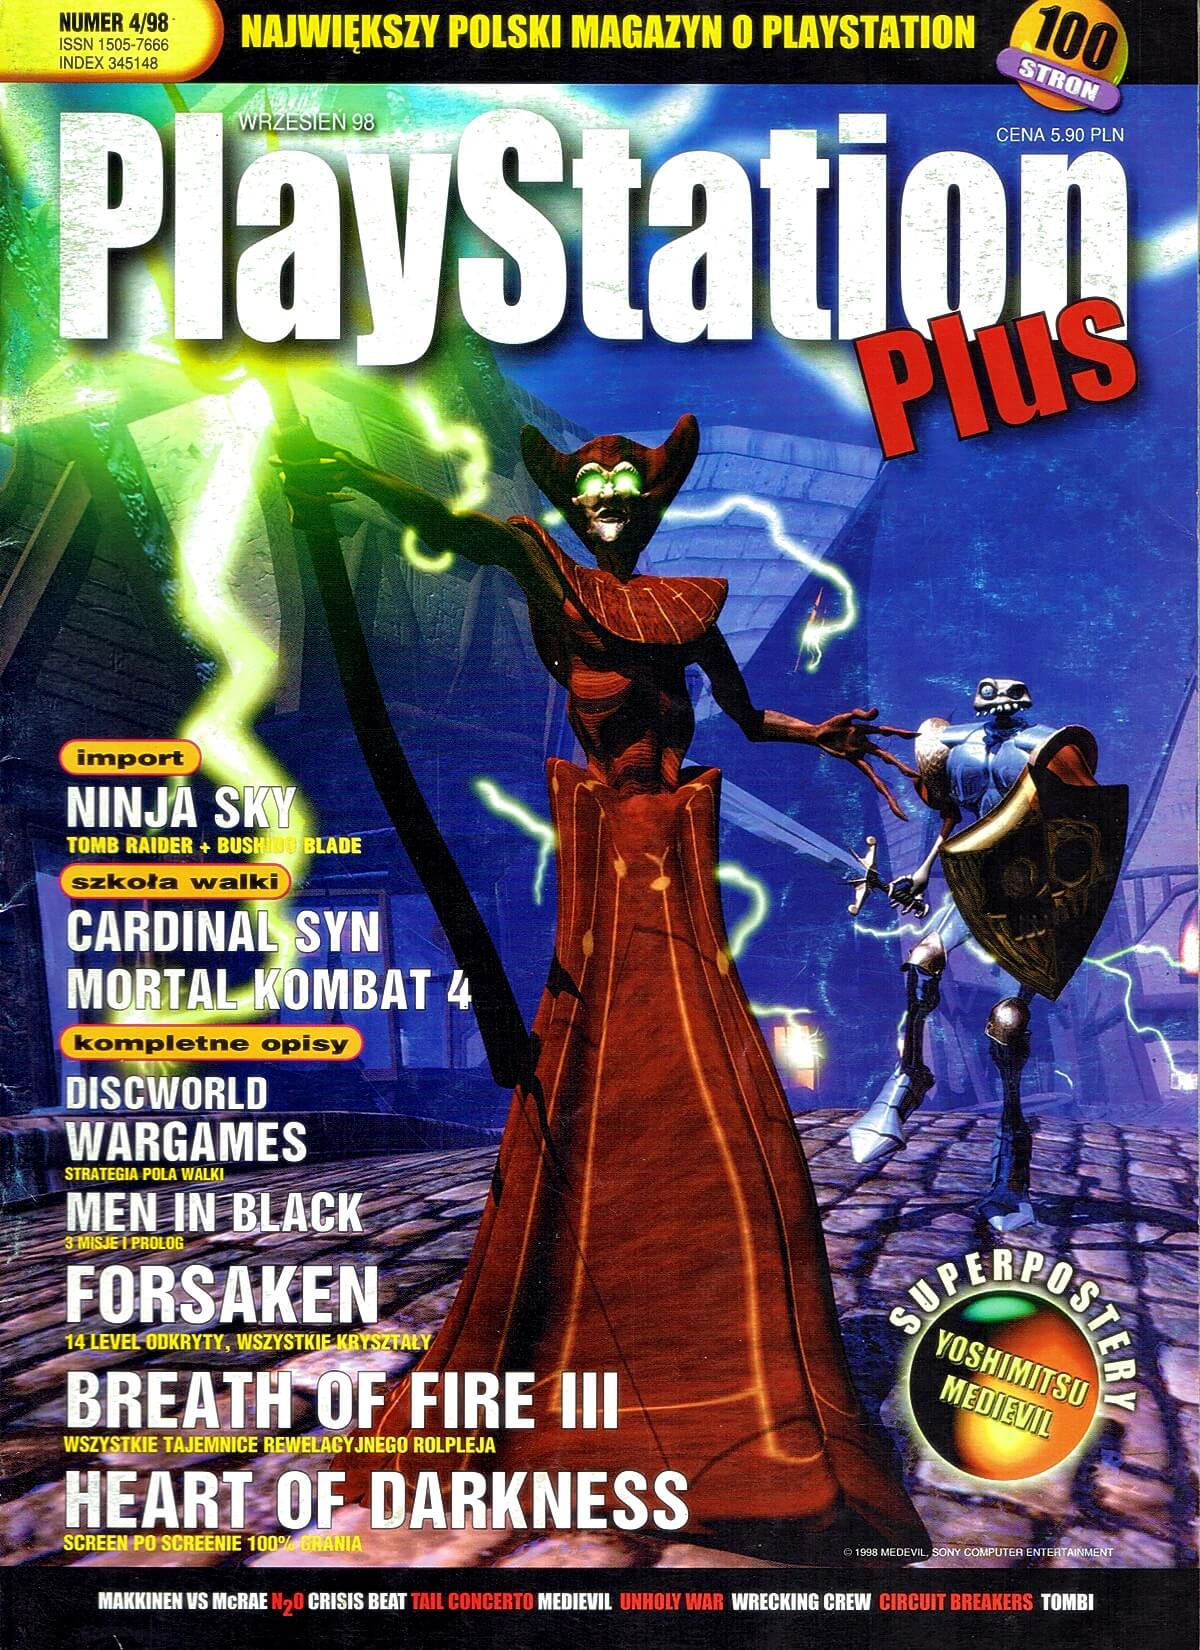 playstation plus magazyn 07 - PlayStation Plus 4/98